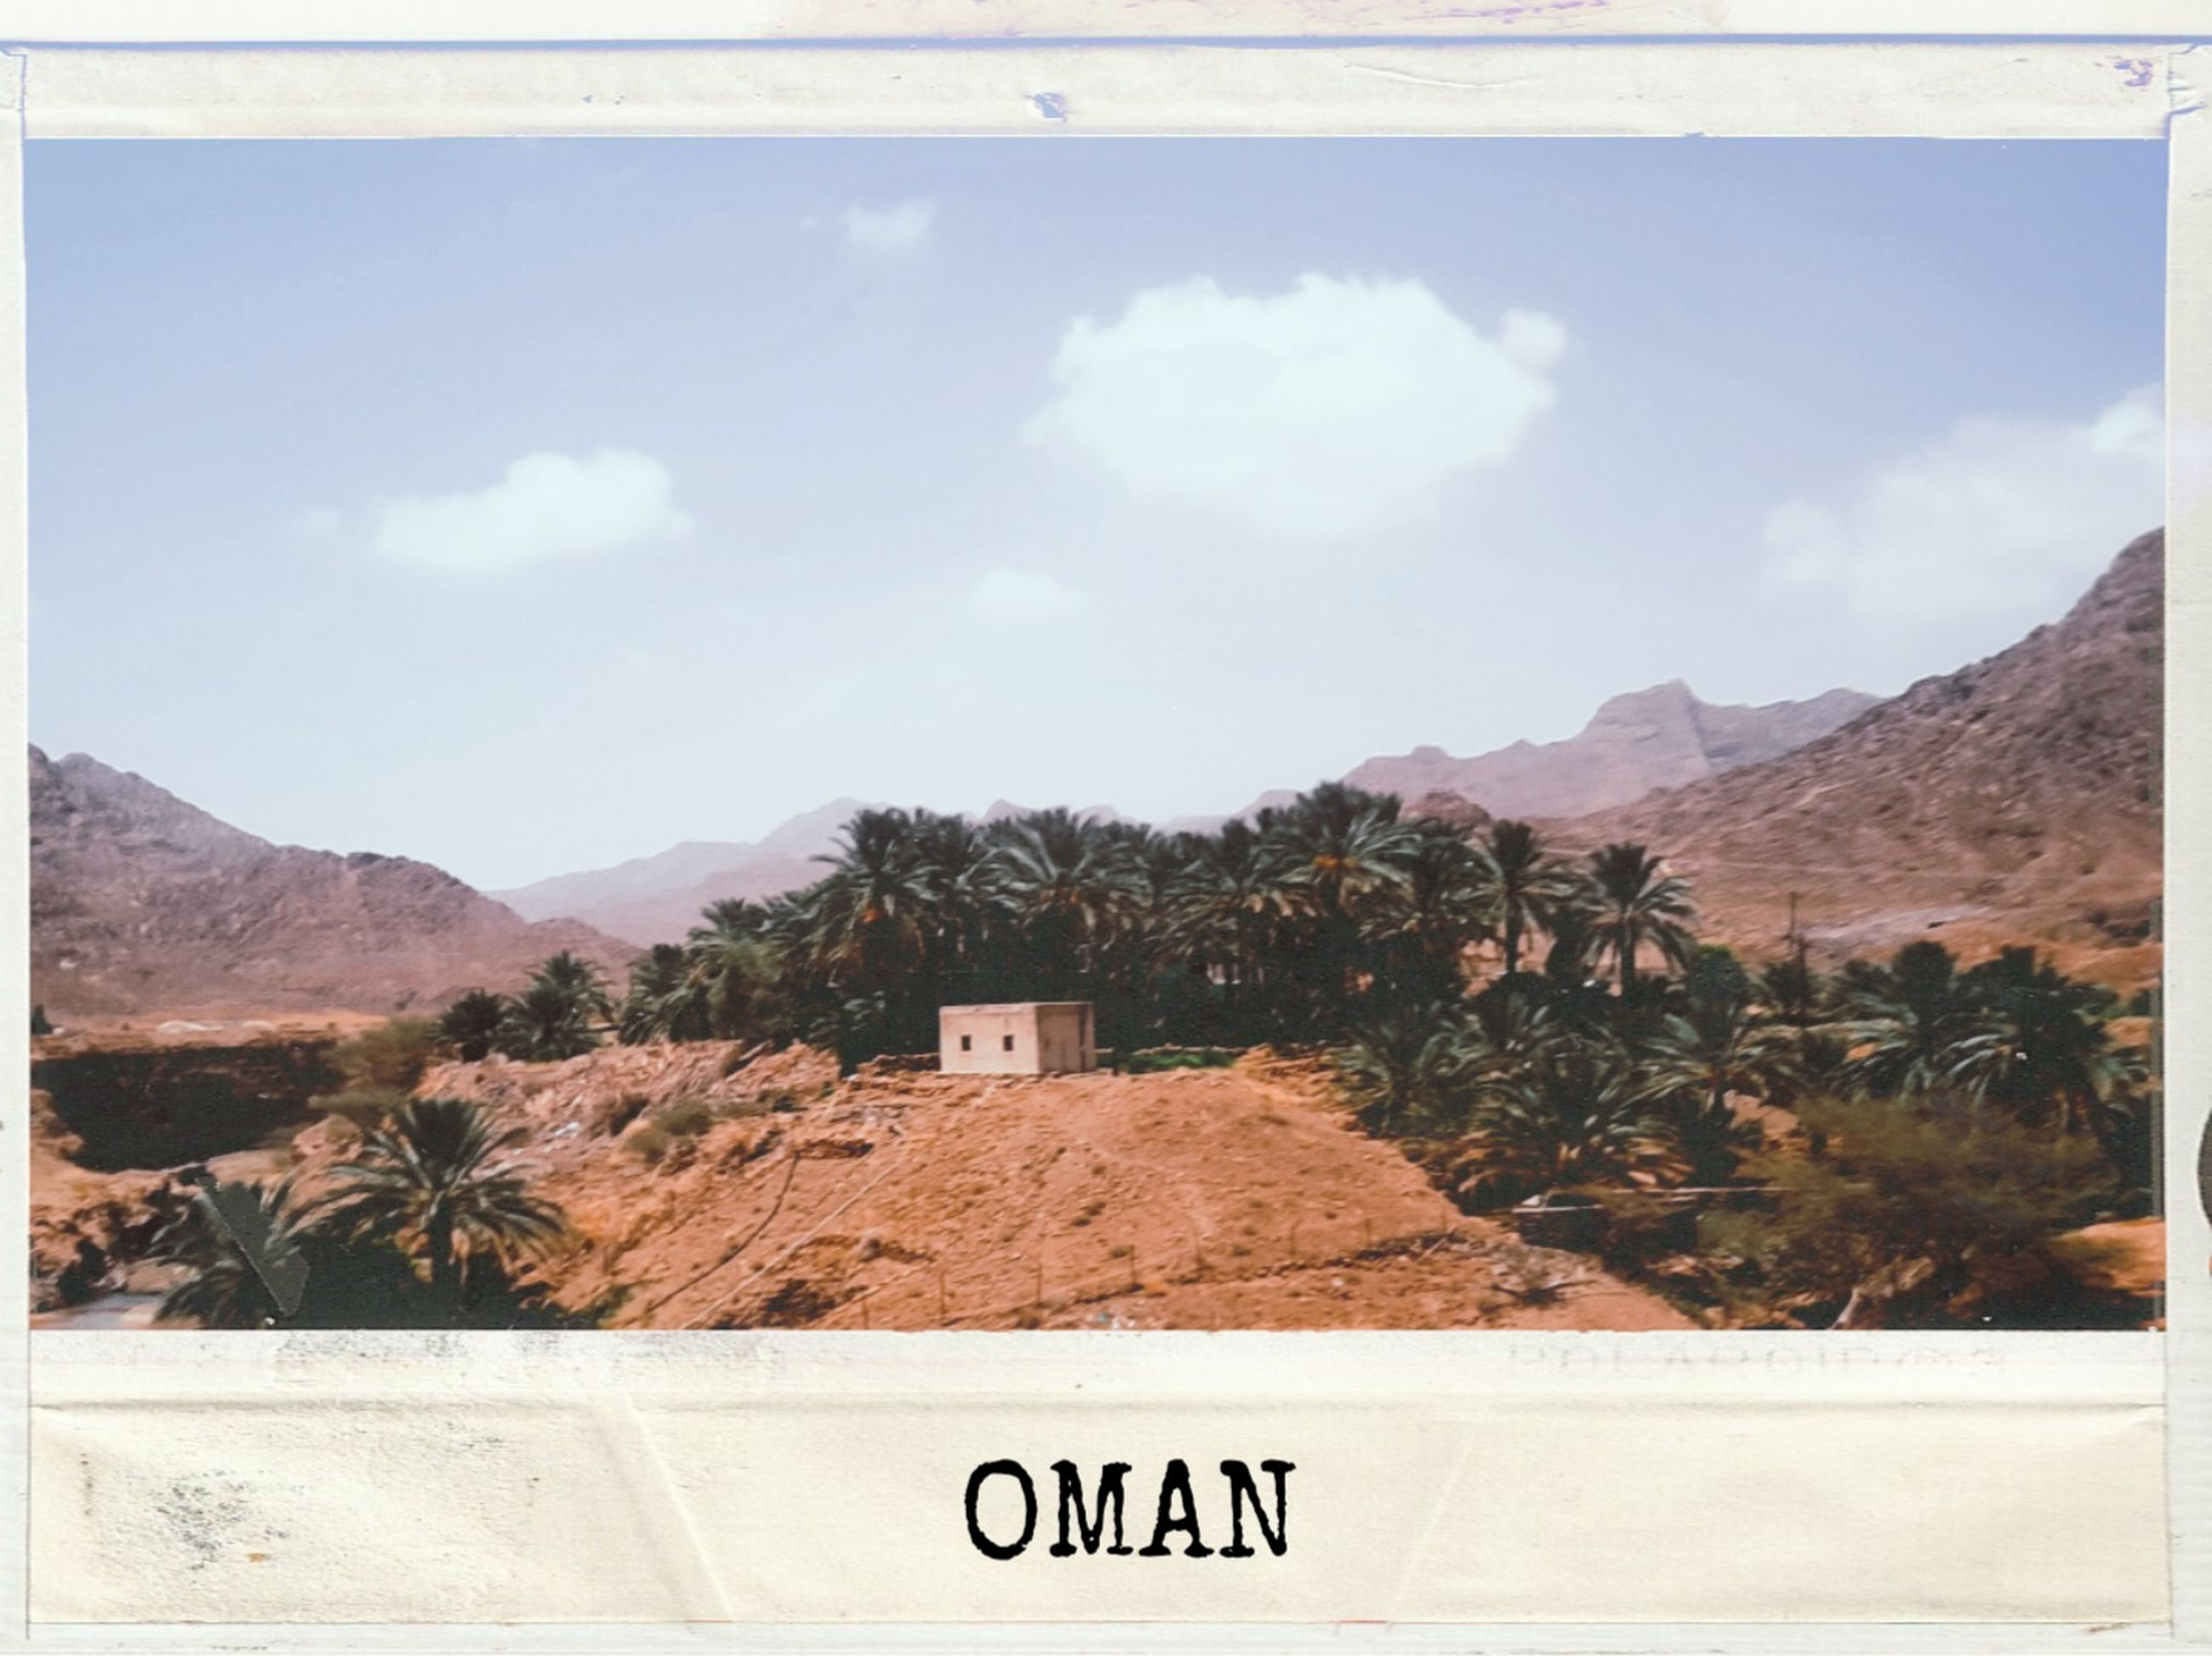 mountain, sky, nature, text, no people, cloud, day, landscape, mountain range, scenics - nature, communication, outdoors, architecture, western script, travel destinations, plant, travel, sign, land, environment, tree, tranquil scene